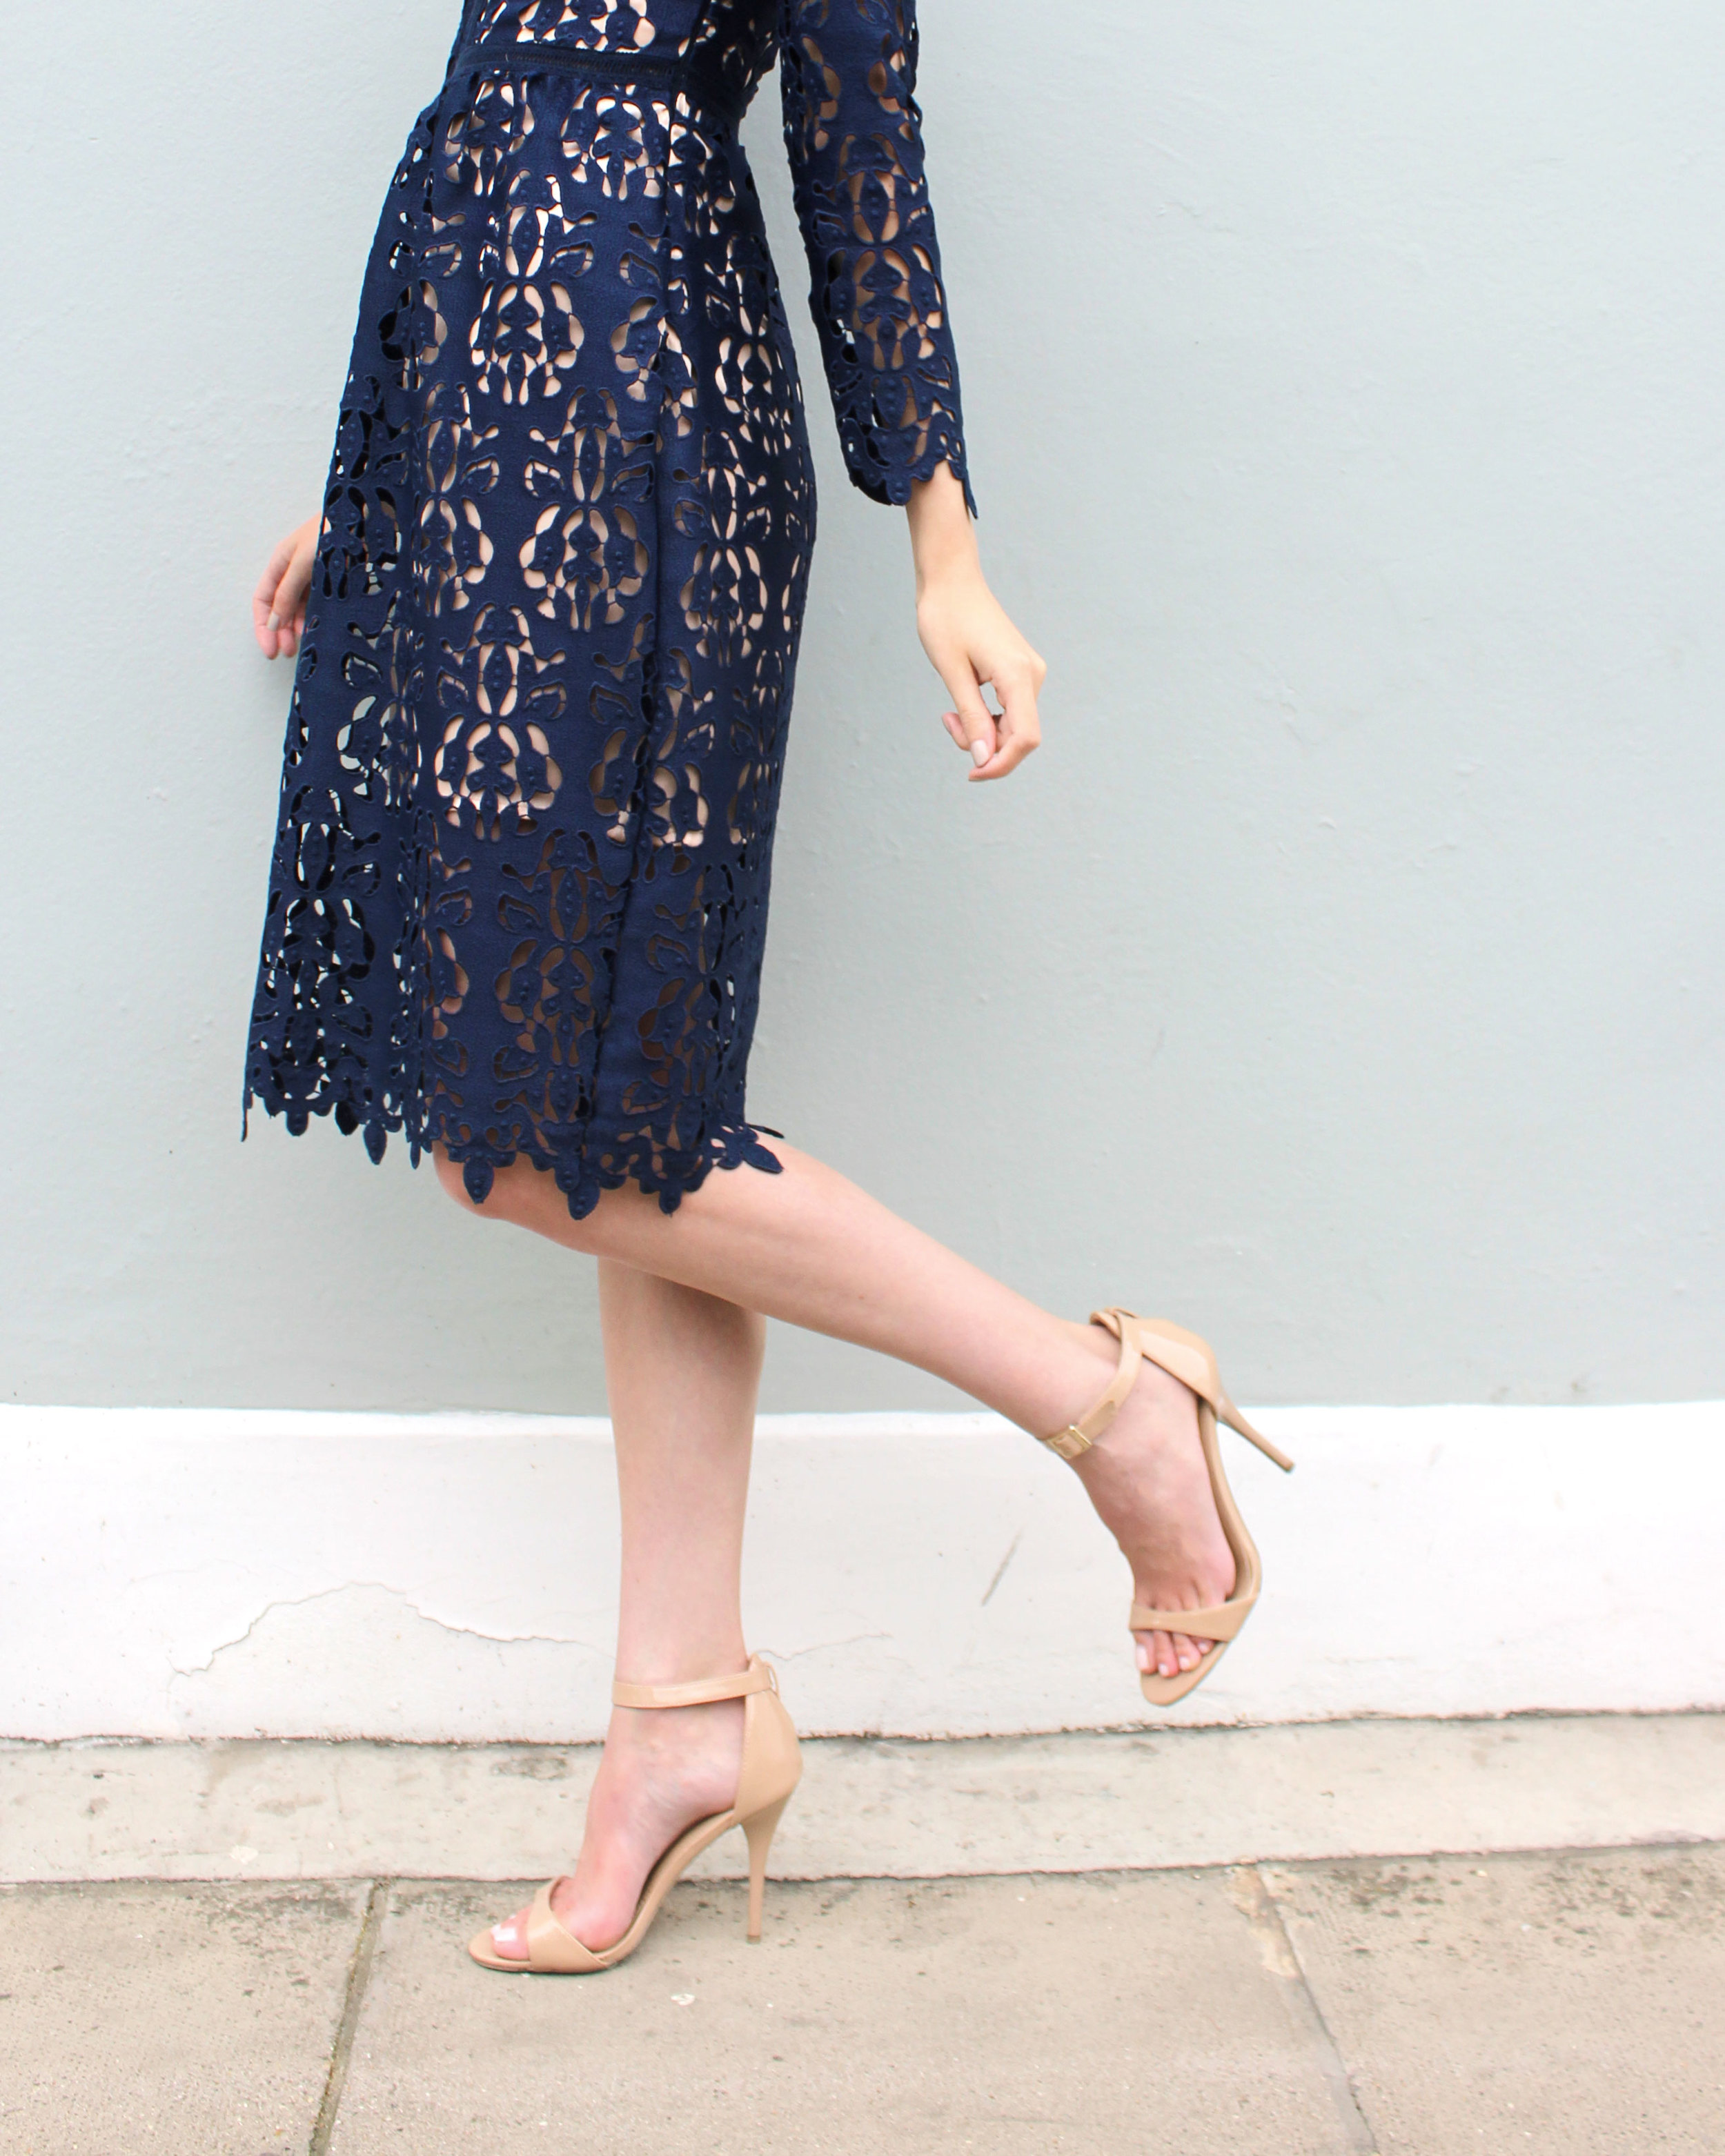 Target strappy sandals and a Zara lace dress.